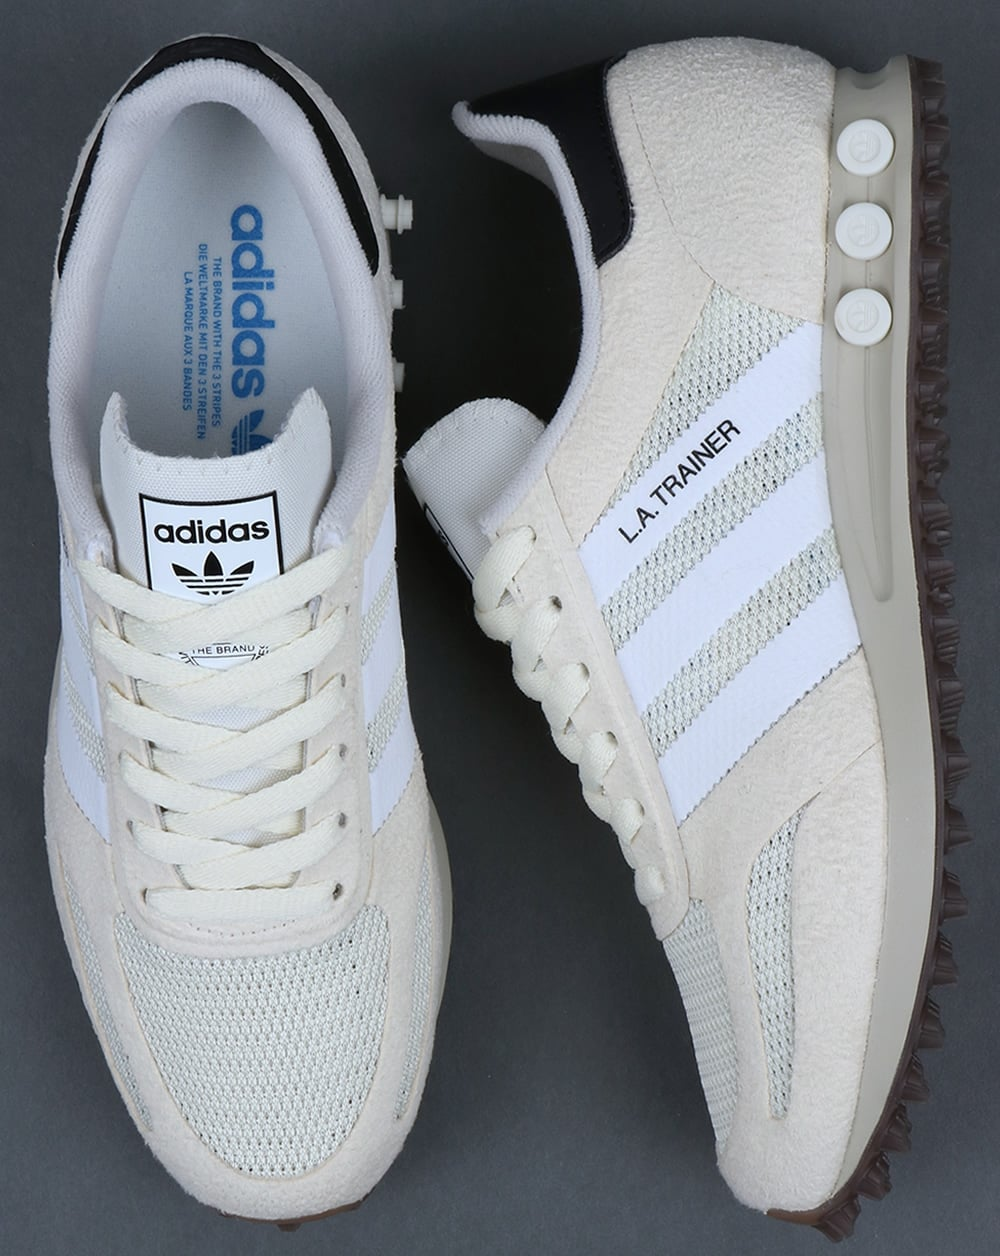 low priced 16441 aa29c adidas Trainers Adidas La Trainer OG Trainers Off White White Gum